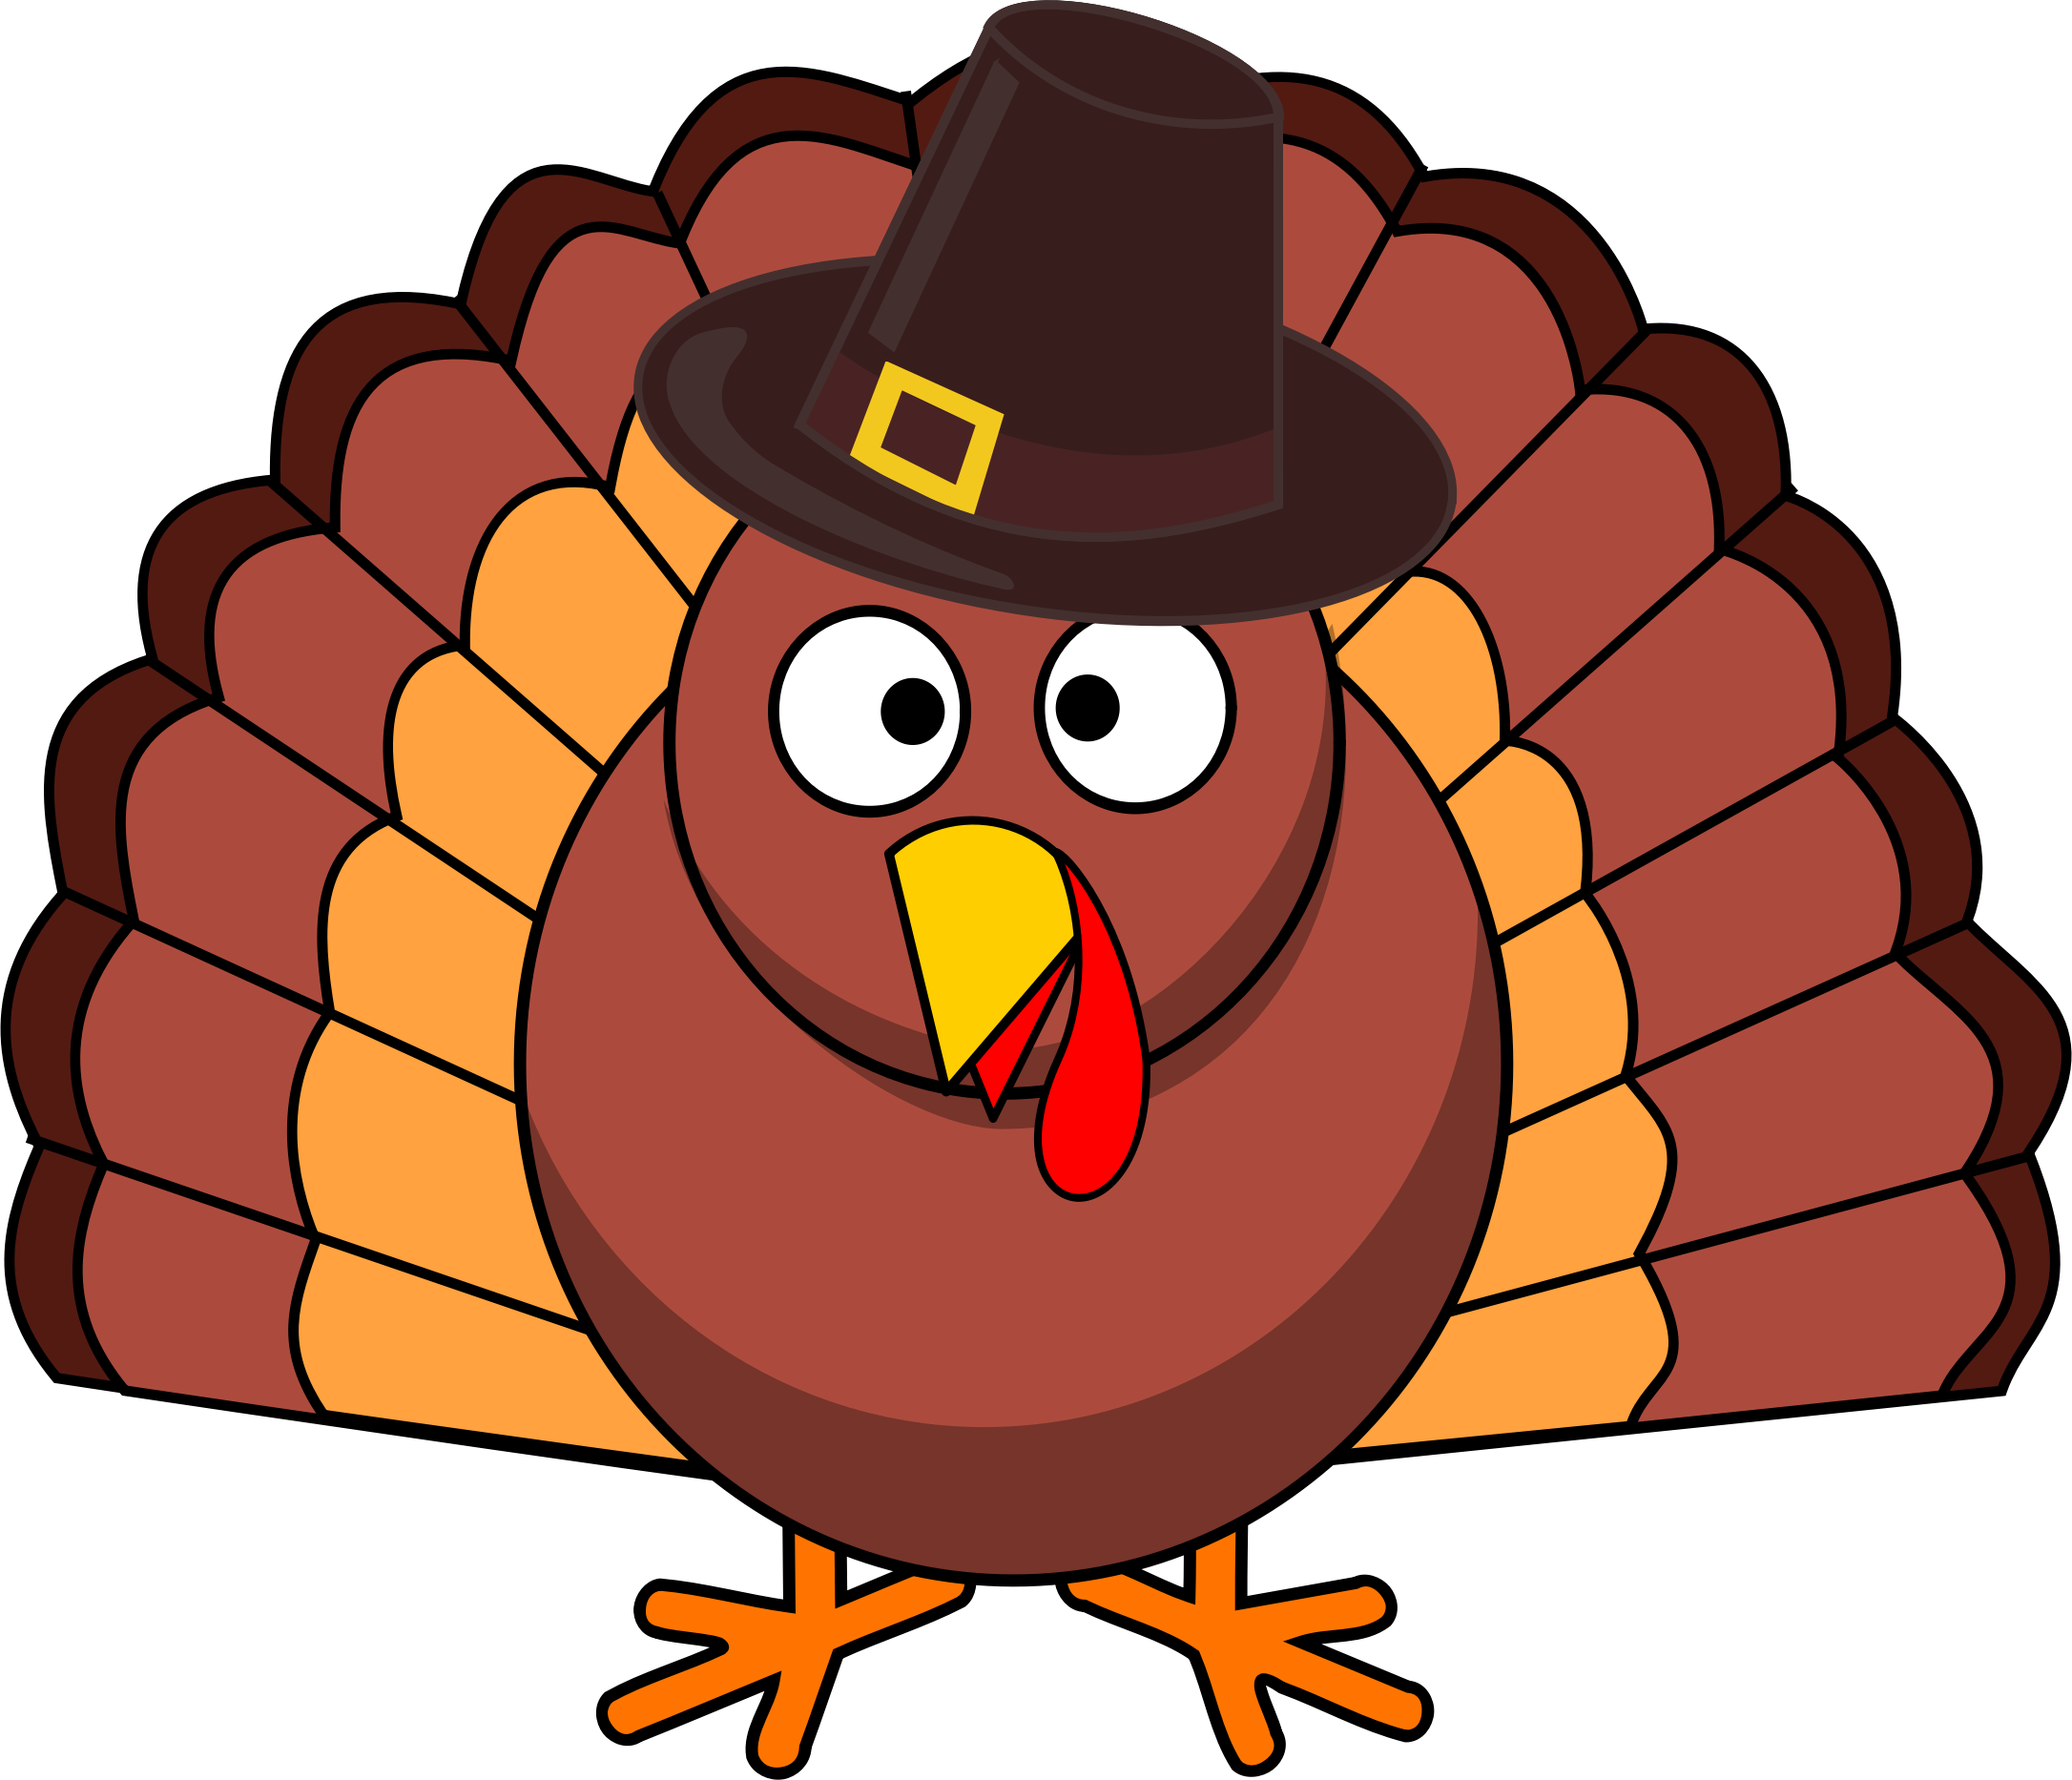 Thanksgiving pictures to draw easy clipart stock Thanksgiving Turkey Drawing at GetDrawings.com | Free for personal ... stock